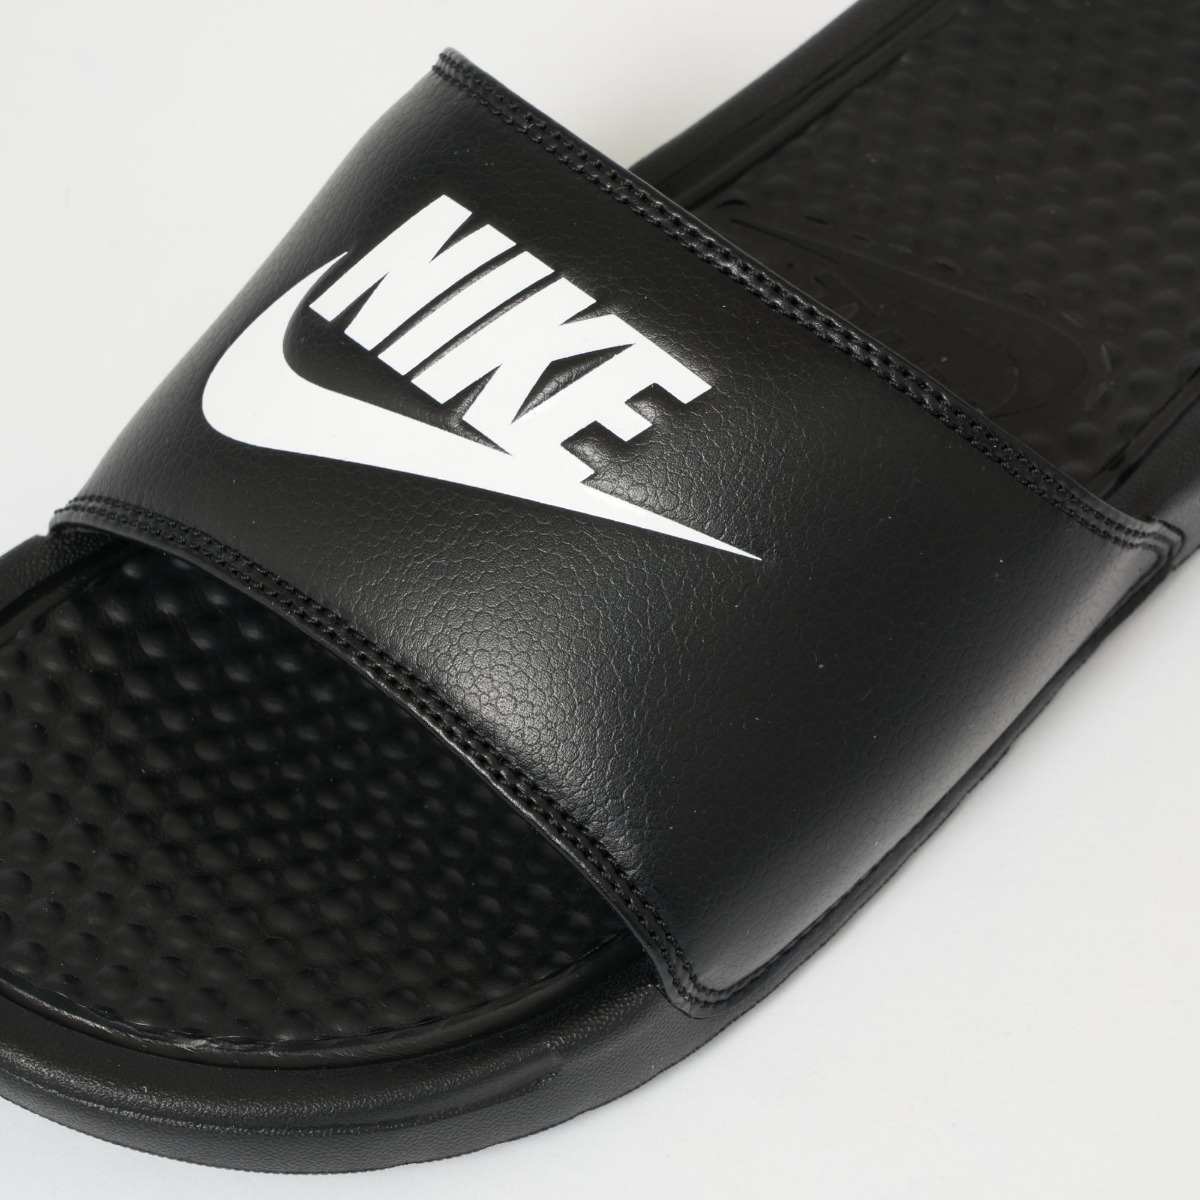 ebef0369b Chinelo Nike Benassi Slide ** Original** Exclusivo - R$ 219,98 em ...